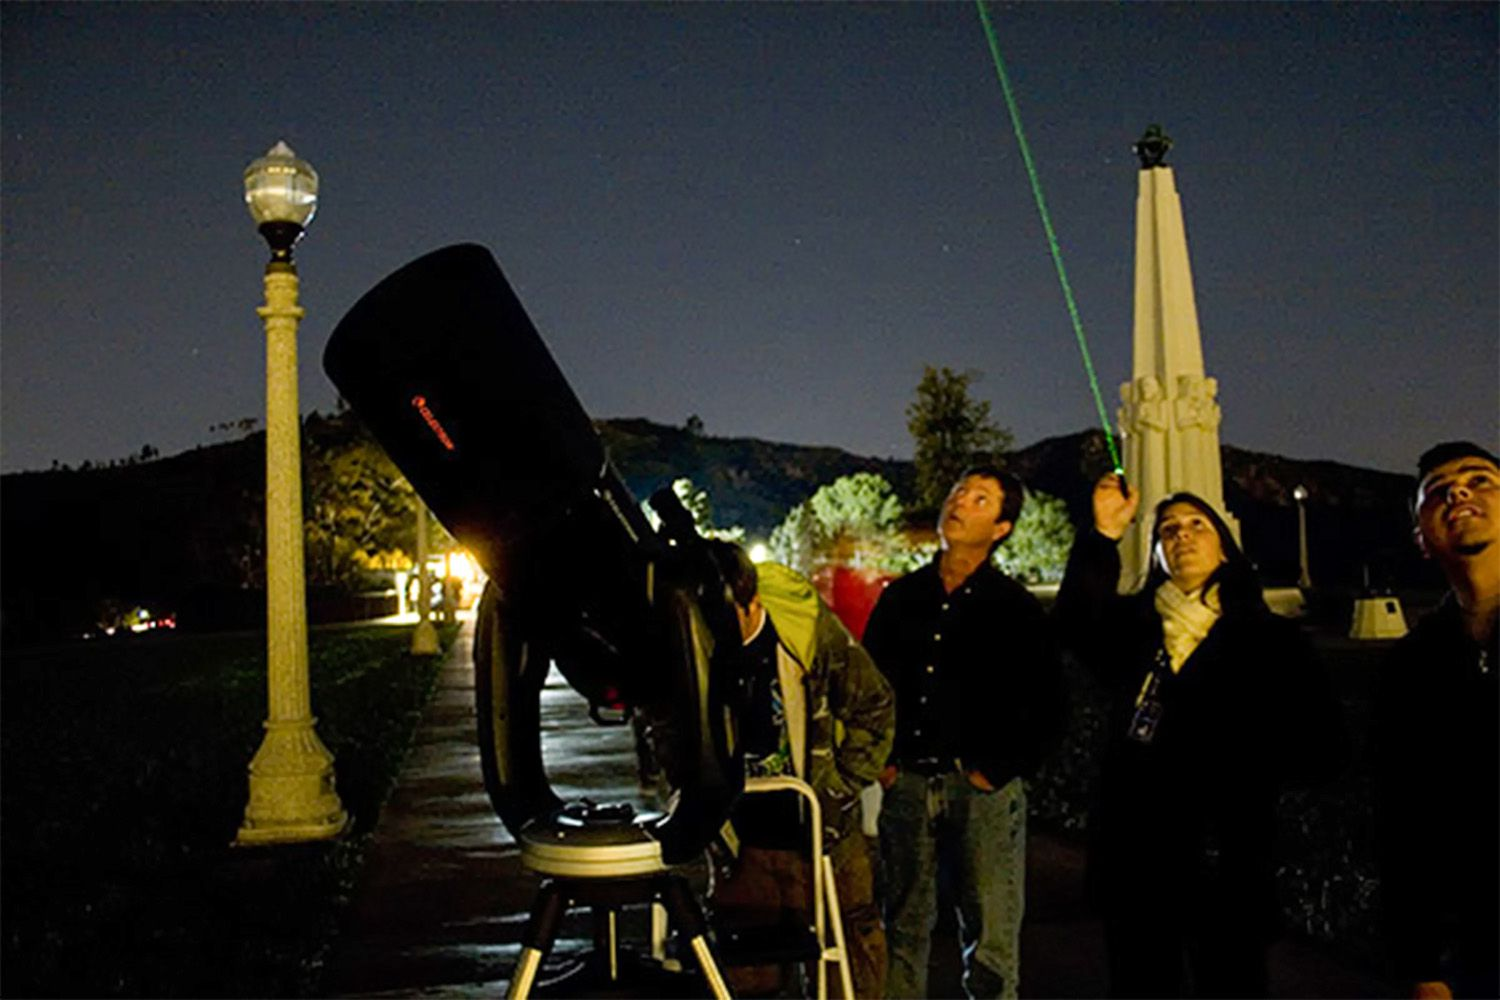 Star Party at the Griffith Observatory